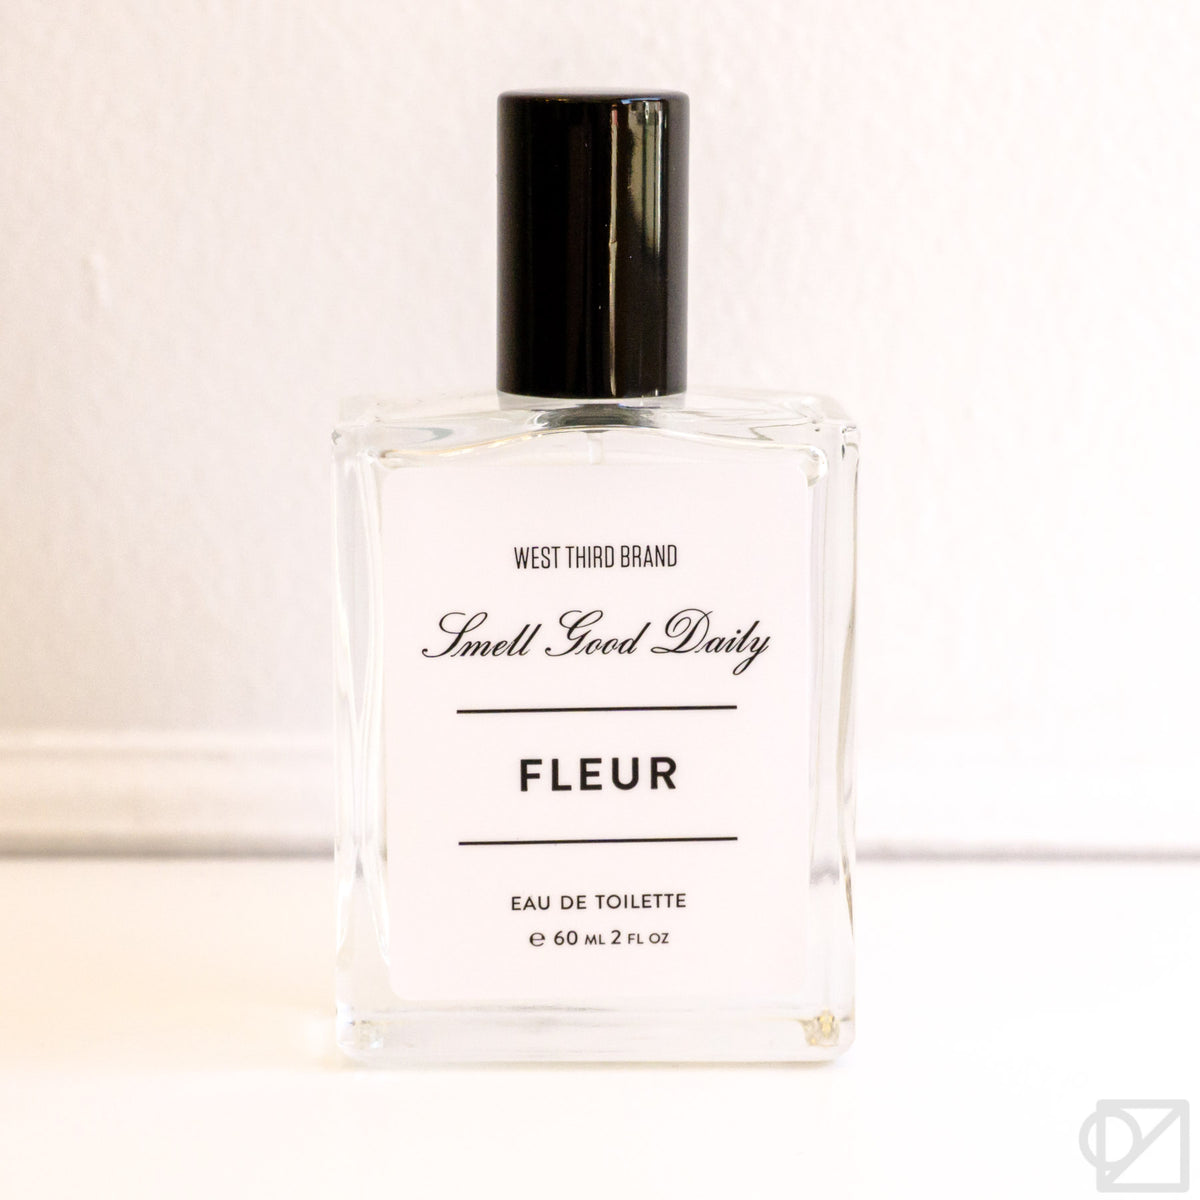 Smell Good Daily Tonic: Fleur